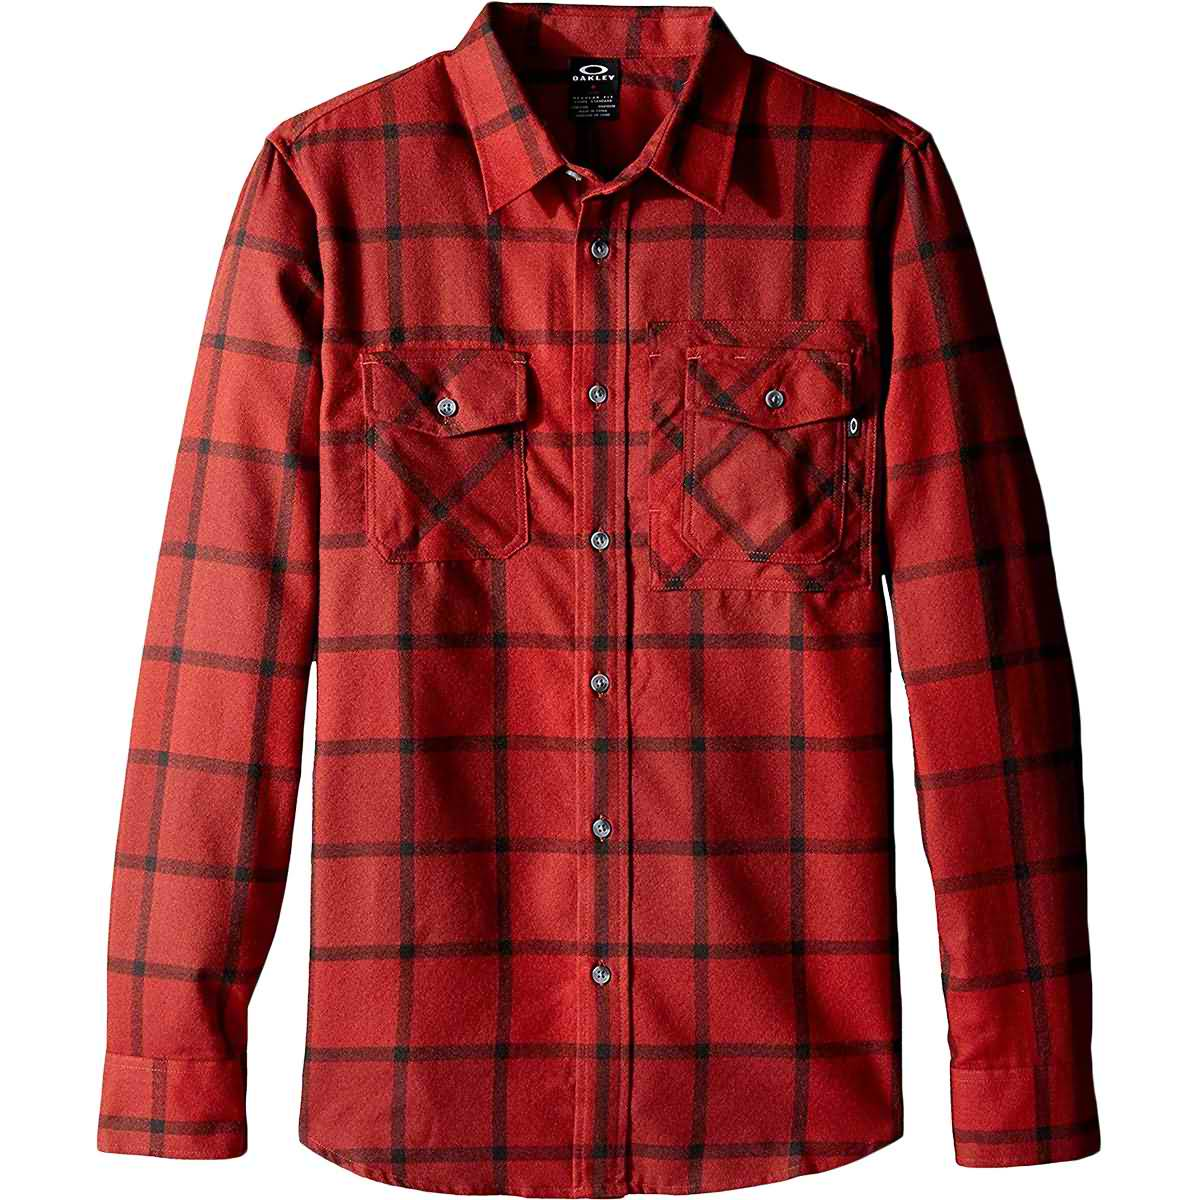 Oakley Adobe Woven Men's Button Up Long-Sleeve Shirts-401773